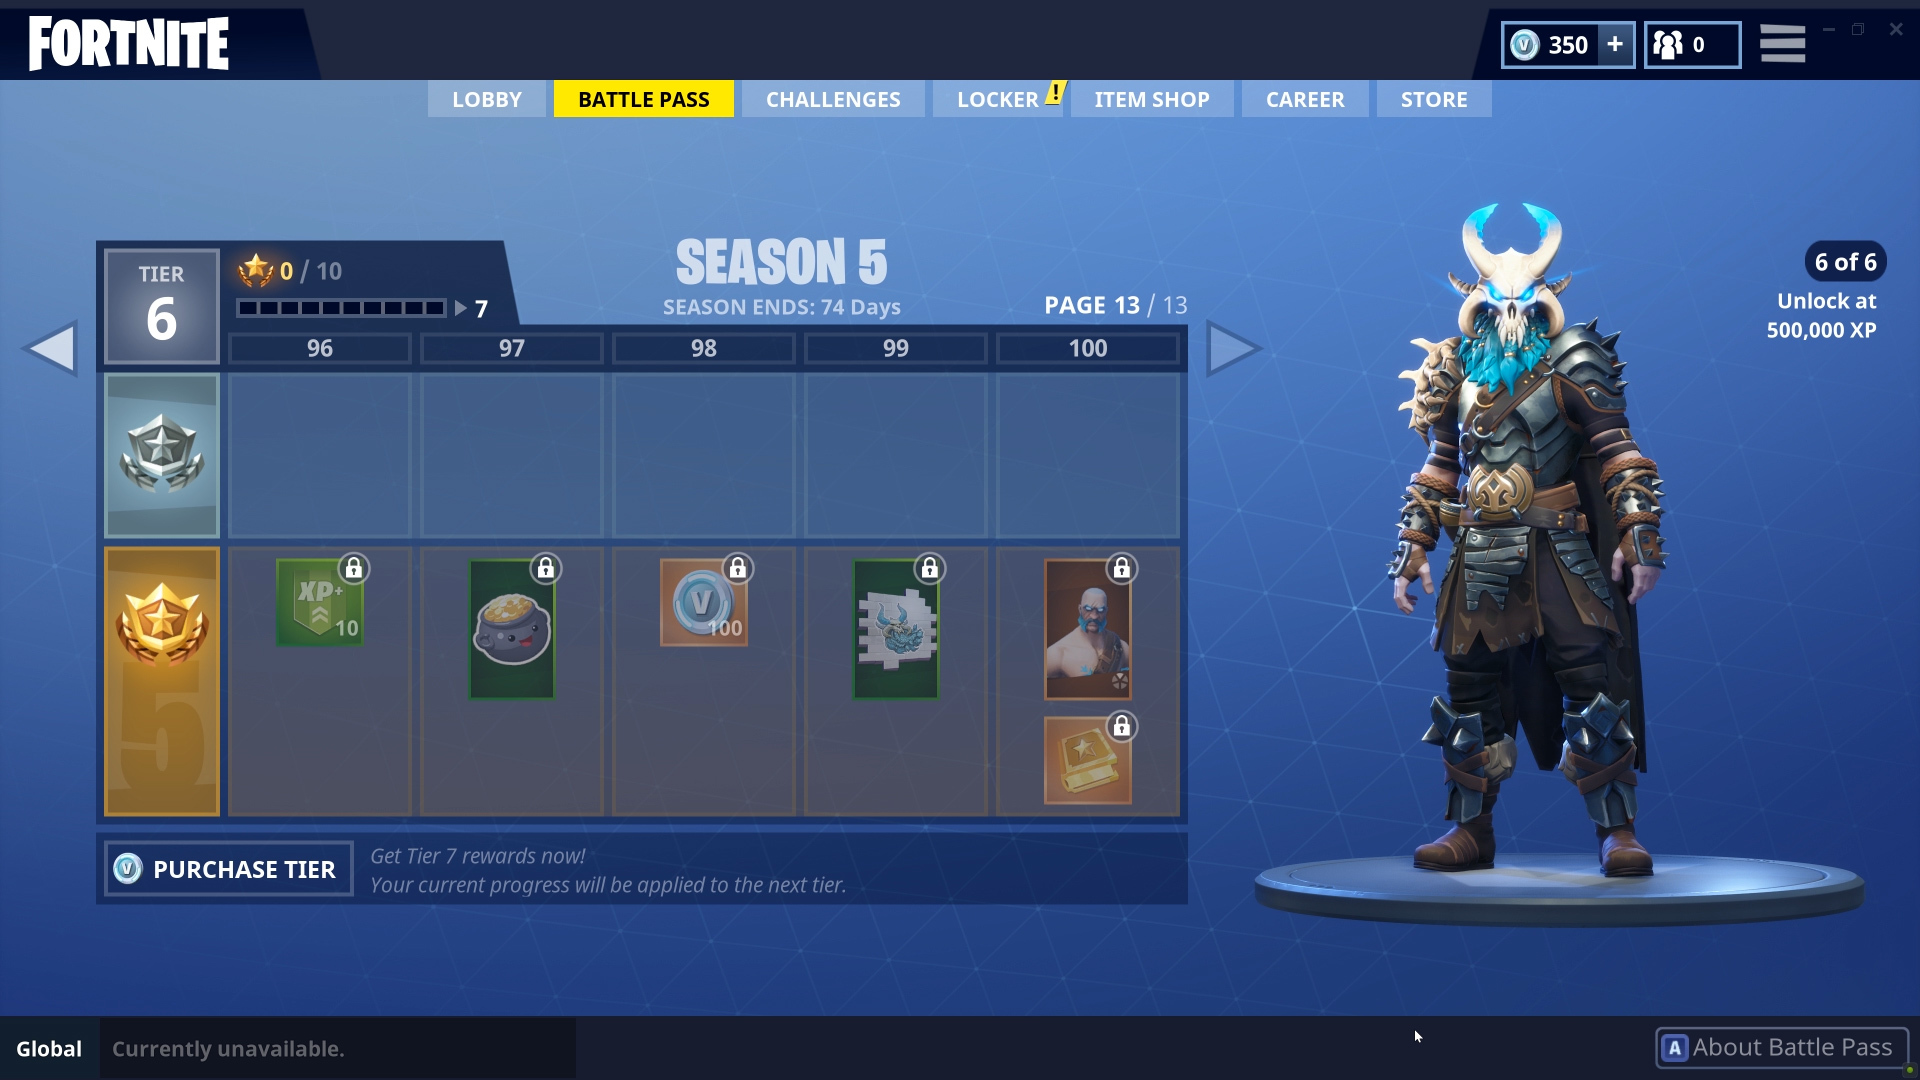 Fortnite New Battle Pass Reward 'Ragnarok Skin' is a Sight to Behold